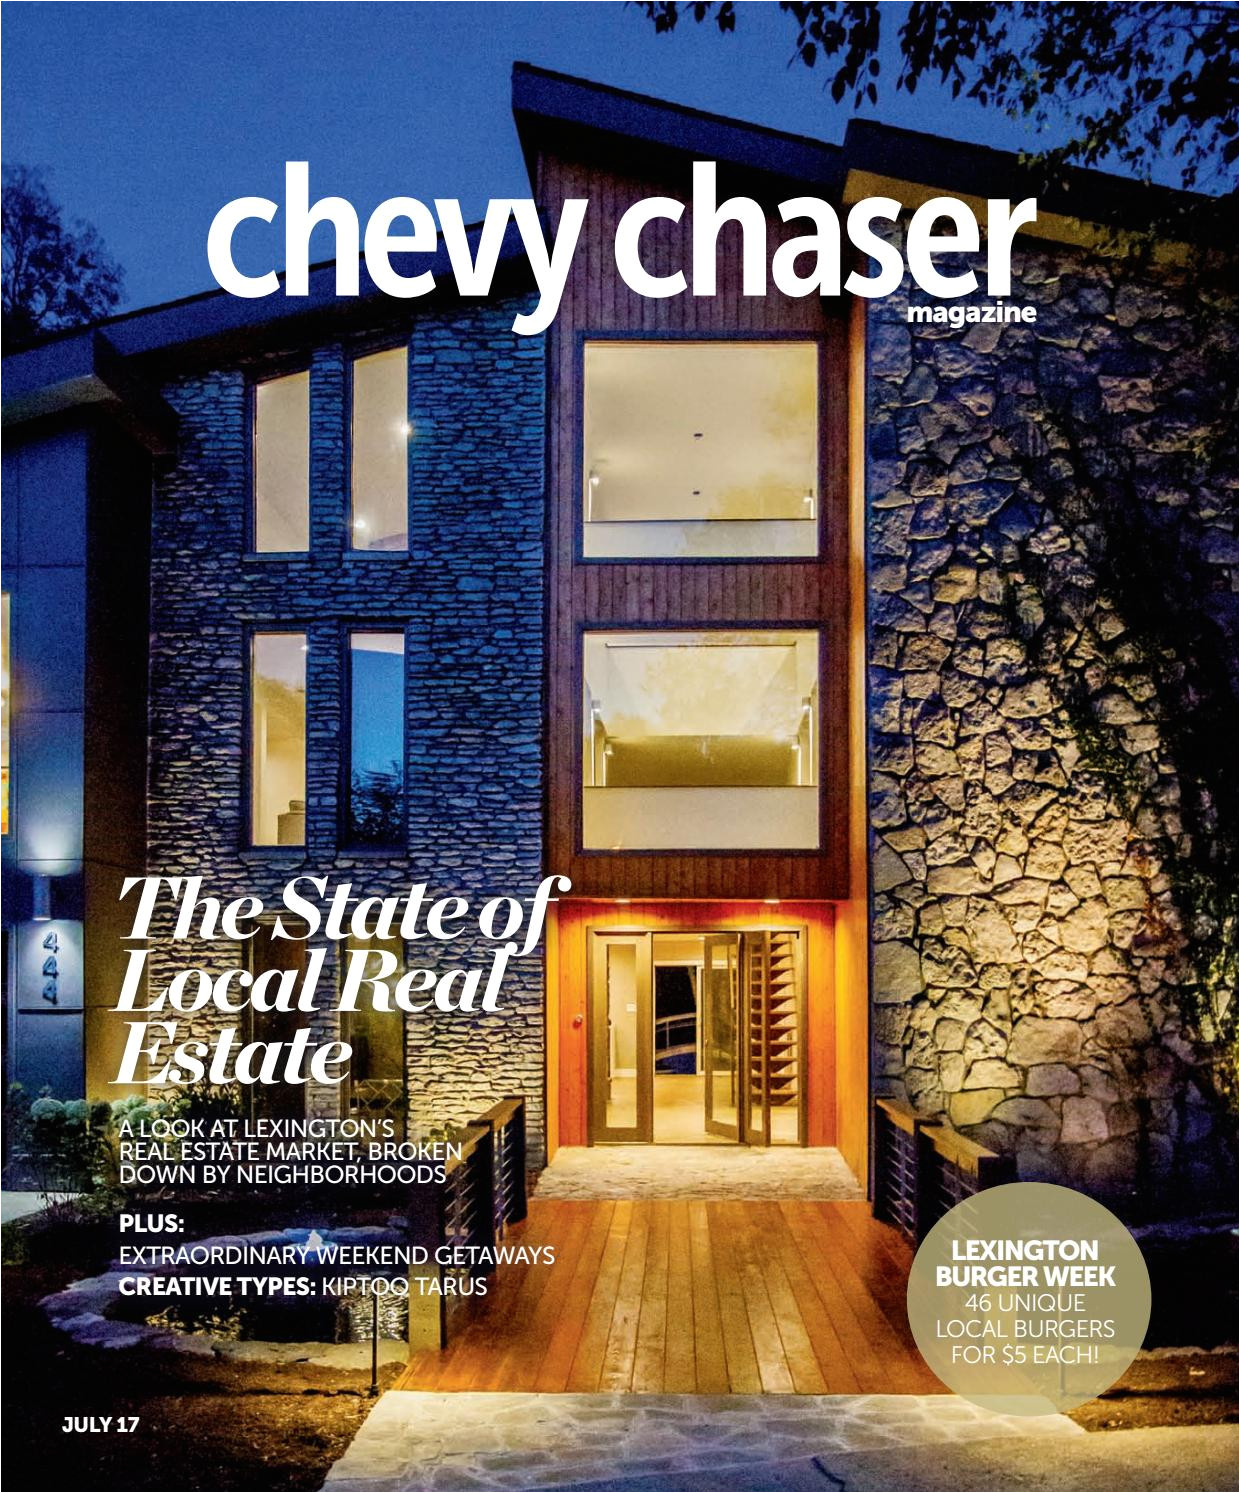 A Night to Remember Lexington Mi Bed and Breakfast Chevy Chaser Magazine July 2017 by Smiley Pete Publishing issuu